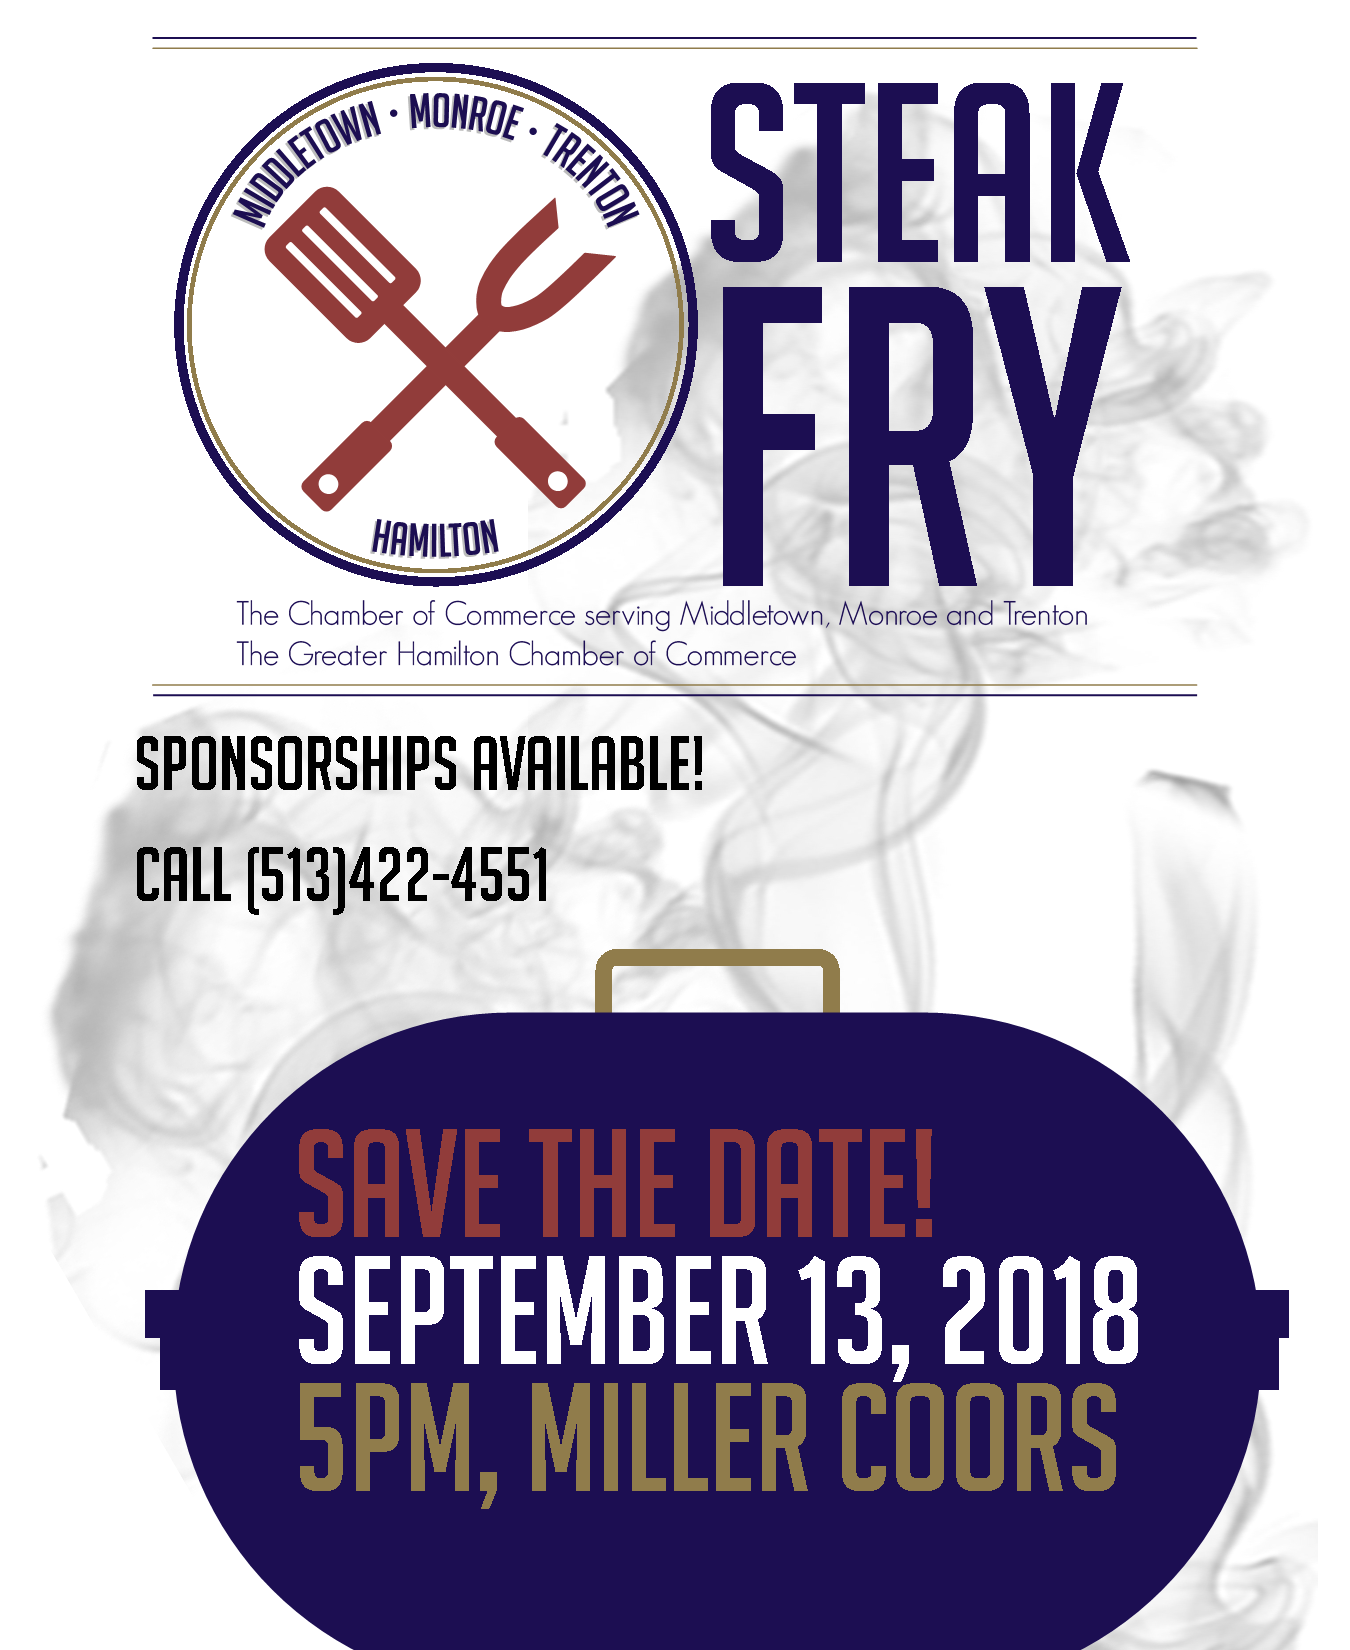 Save the Date Steak Fry